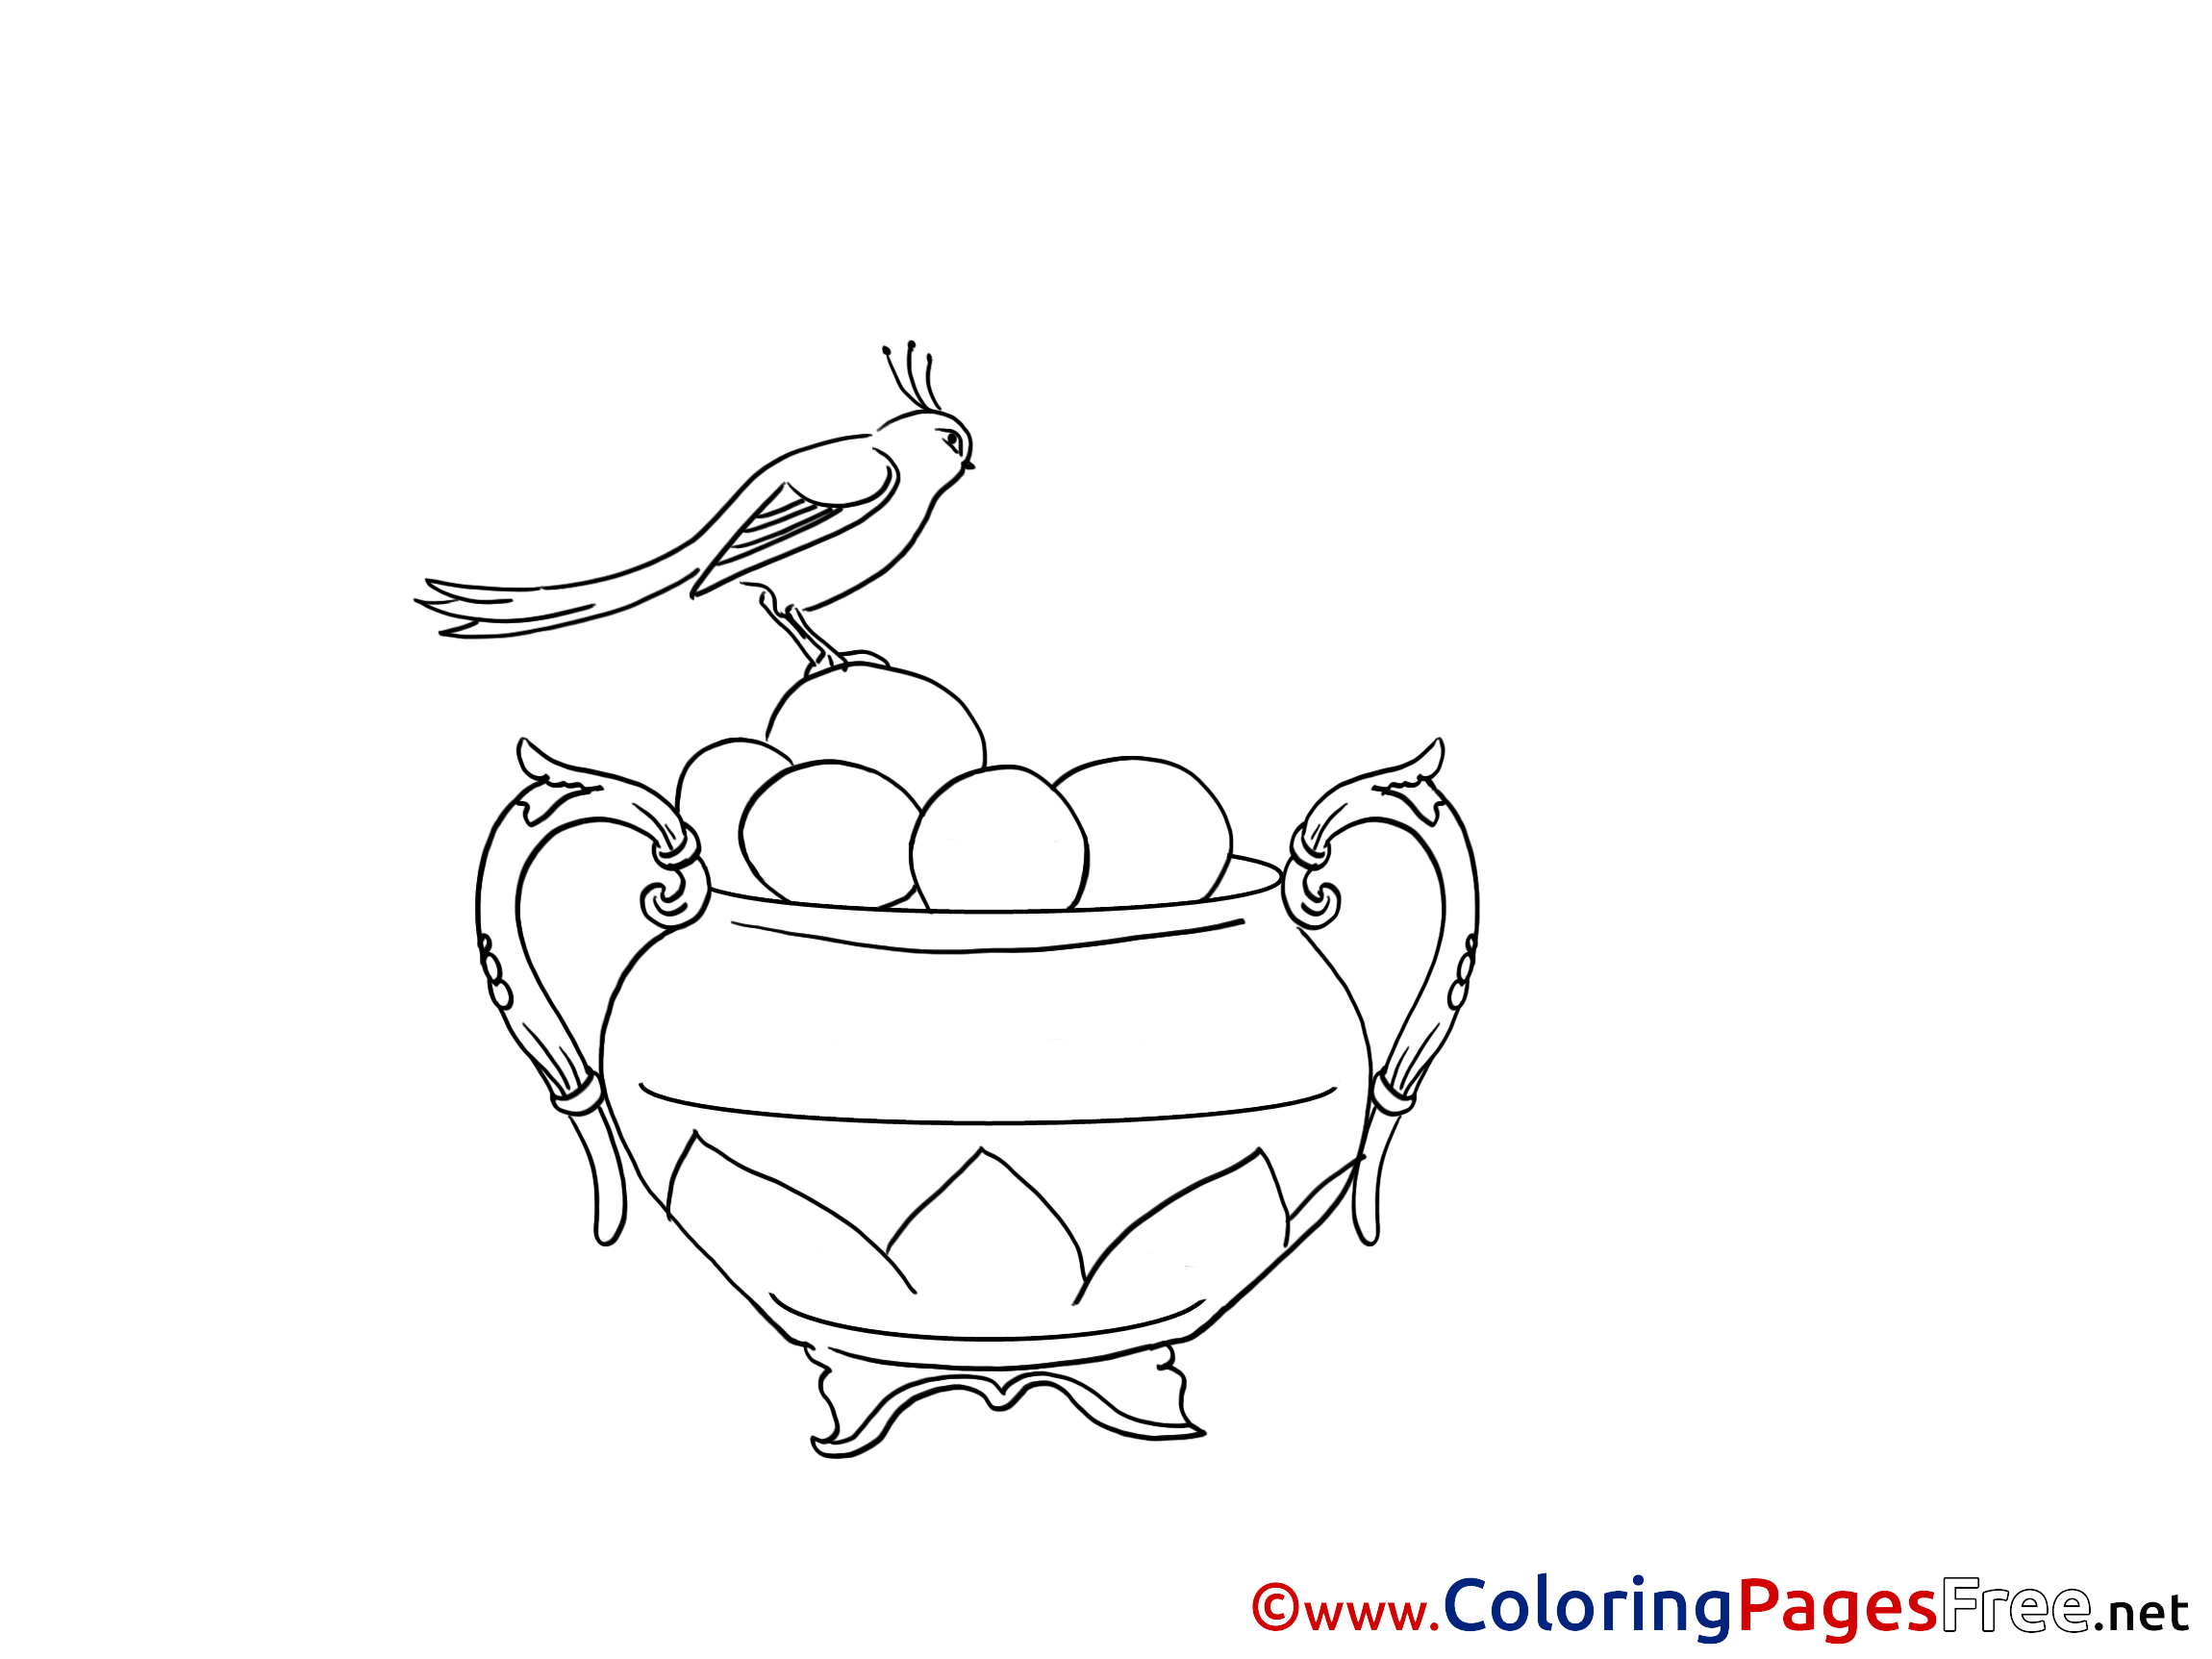 Vase clipart colouring page, Vase colouring page Transparent FREE ... | 1725x2300